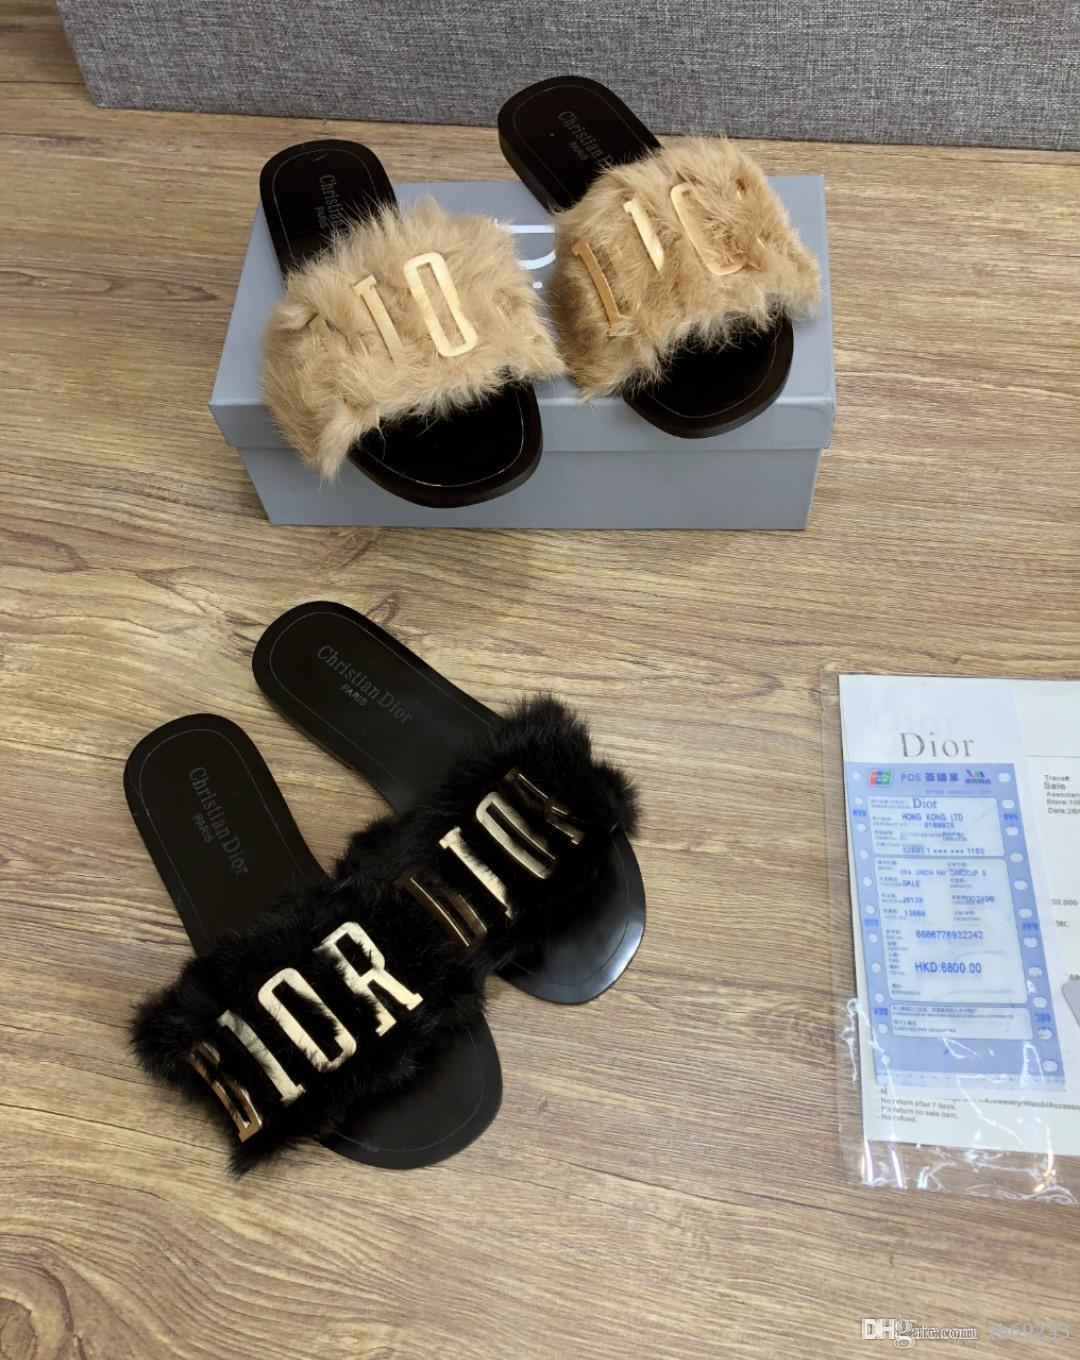 a4bd79a88297a 2018 New Lady Real Fox Fur Slippers Women Fashion Sliders Spring Summer  Autumn Fur Slides Indoor Outdoor Flat 35 42 Ladies Shoes Red Shoes From ...